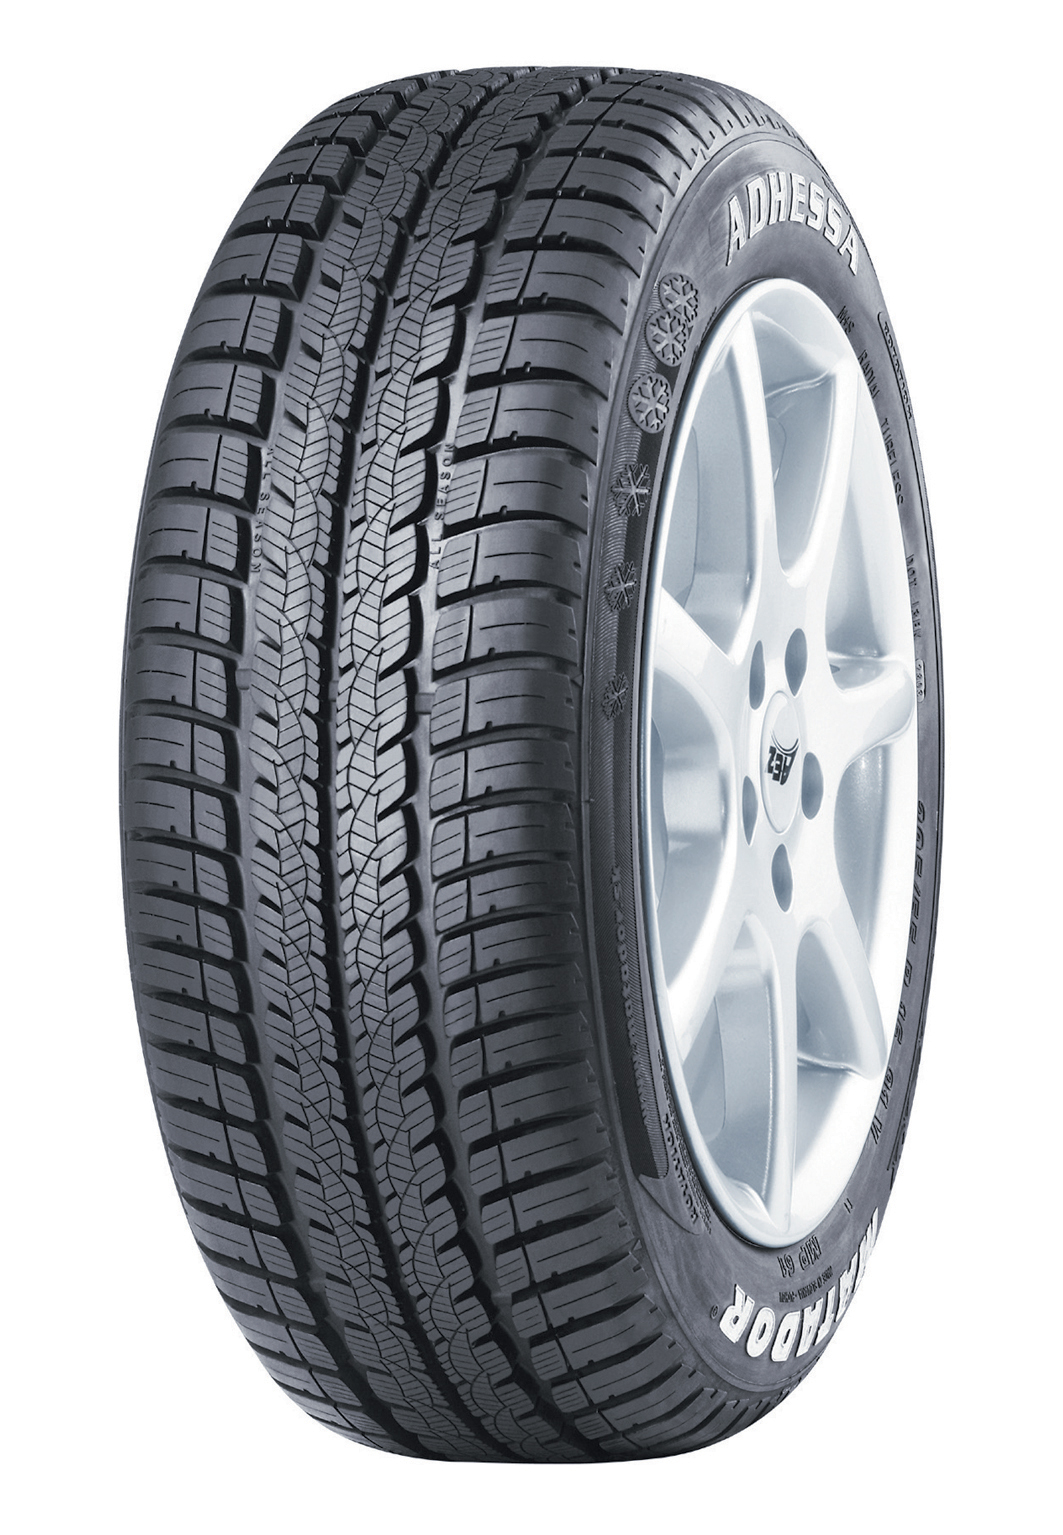 Anvelopa all seasons MATADOR MP61 ADHESSA EVO 165/70 R13 79T